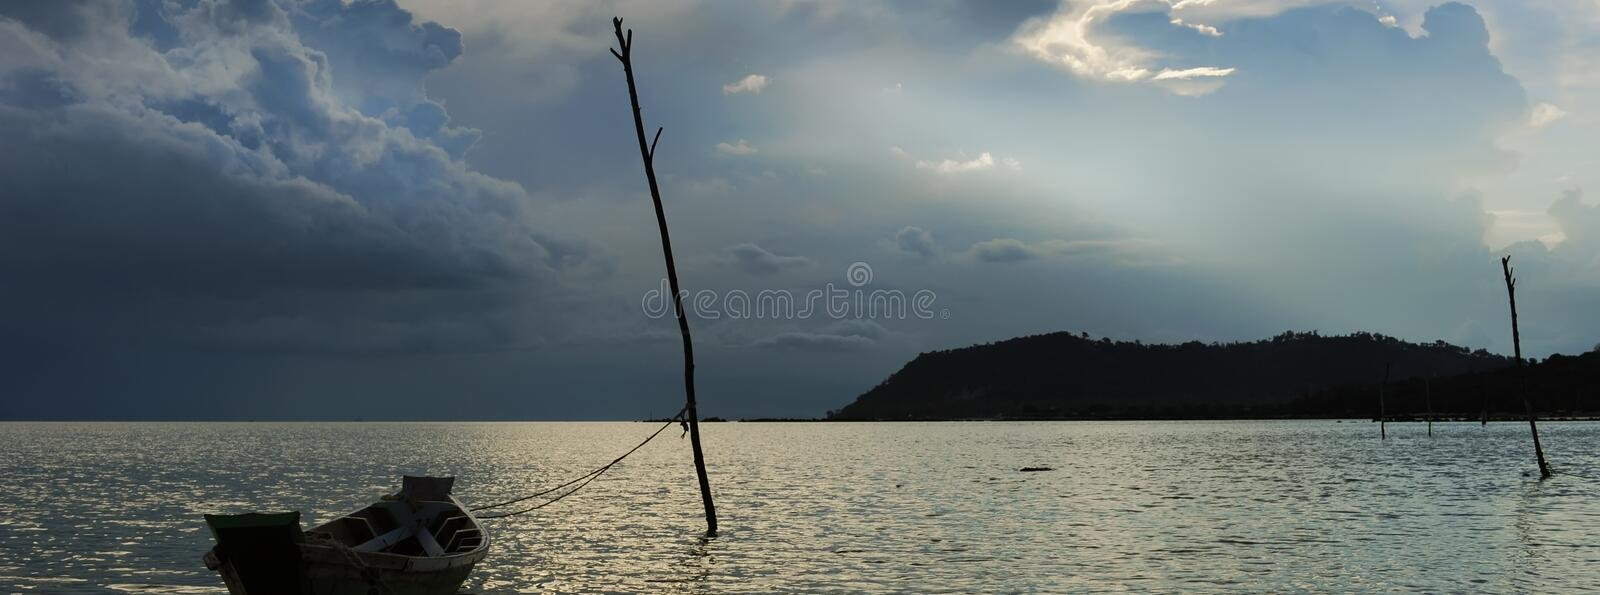 Stormy clouds over the sea, lonely boat silhouette in water, dramatic sky during sunset, no people. Tourism and travelling concept royalty free stock images